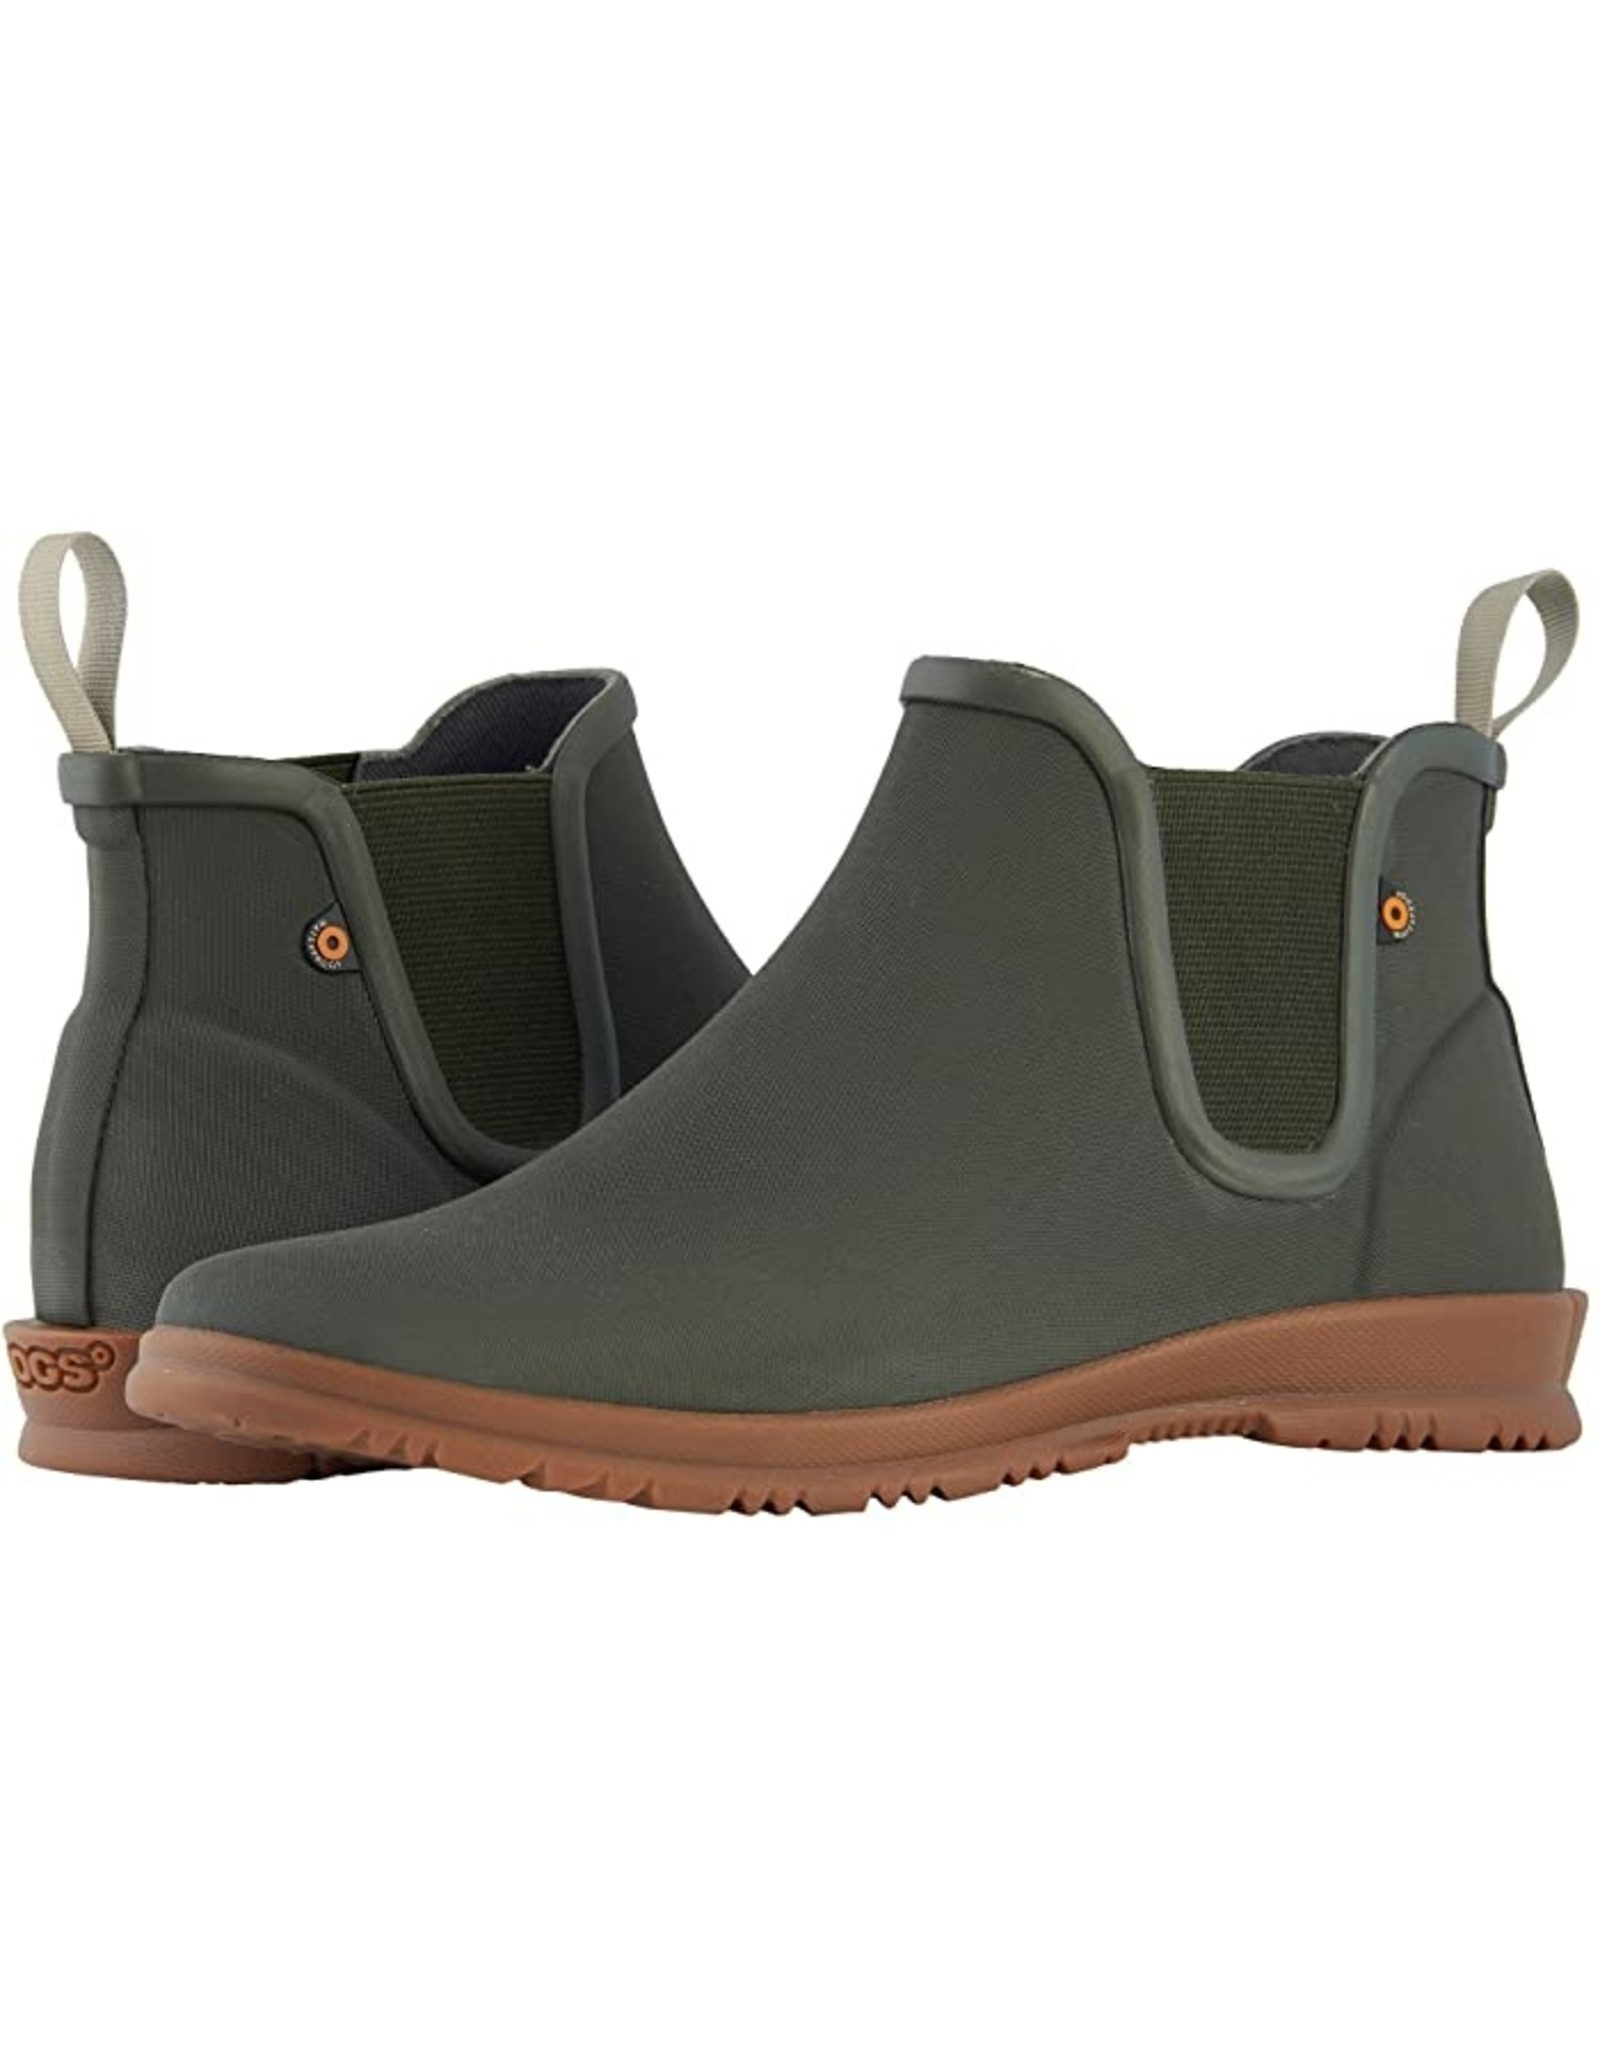 Bogs Sweetpea Boot Size 6, Sage